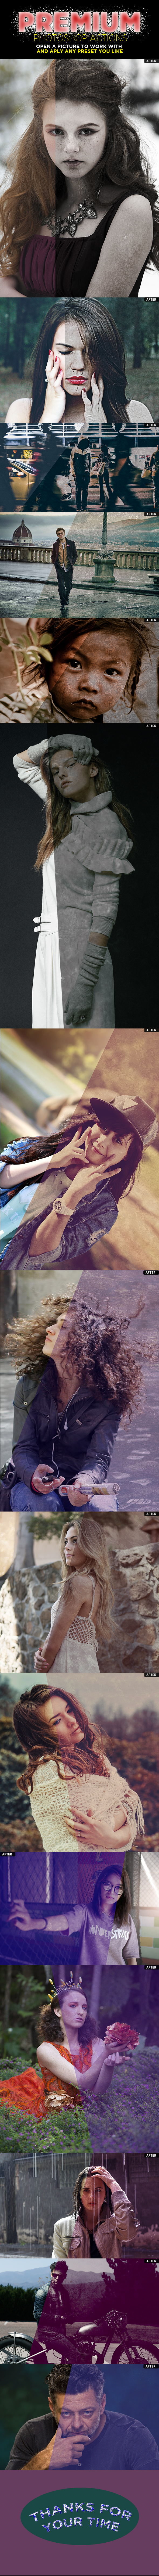 grunge Photoshop Actions - Photo Effects Actions